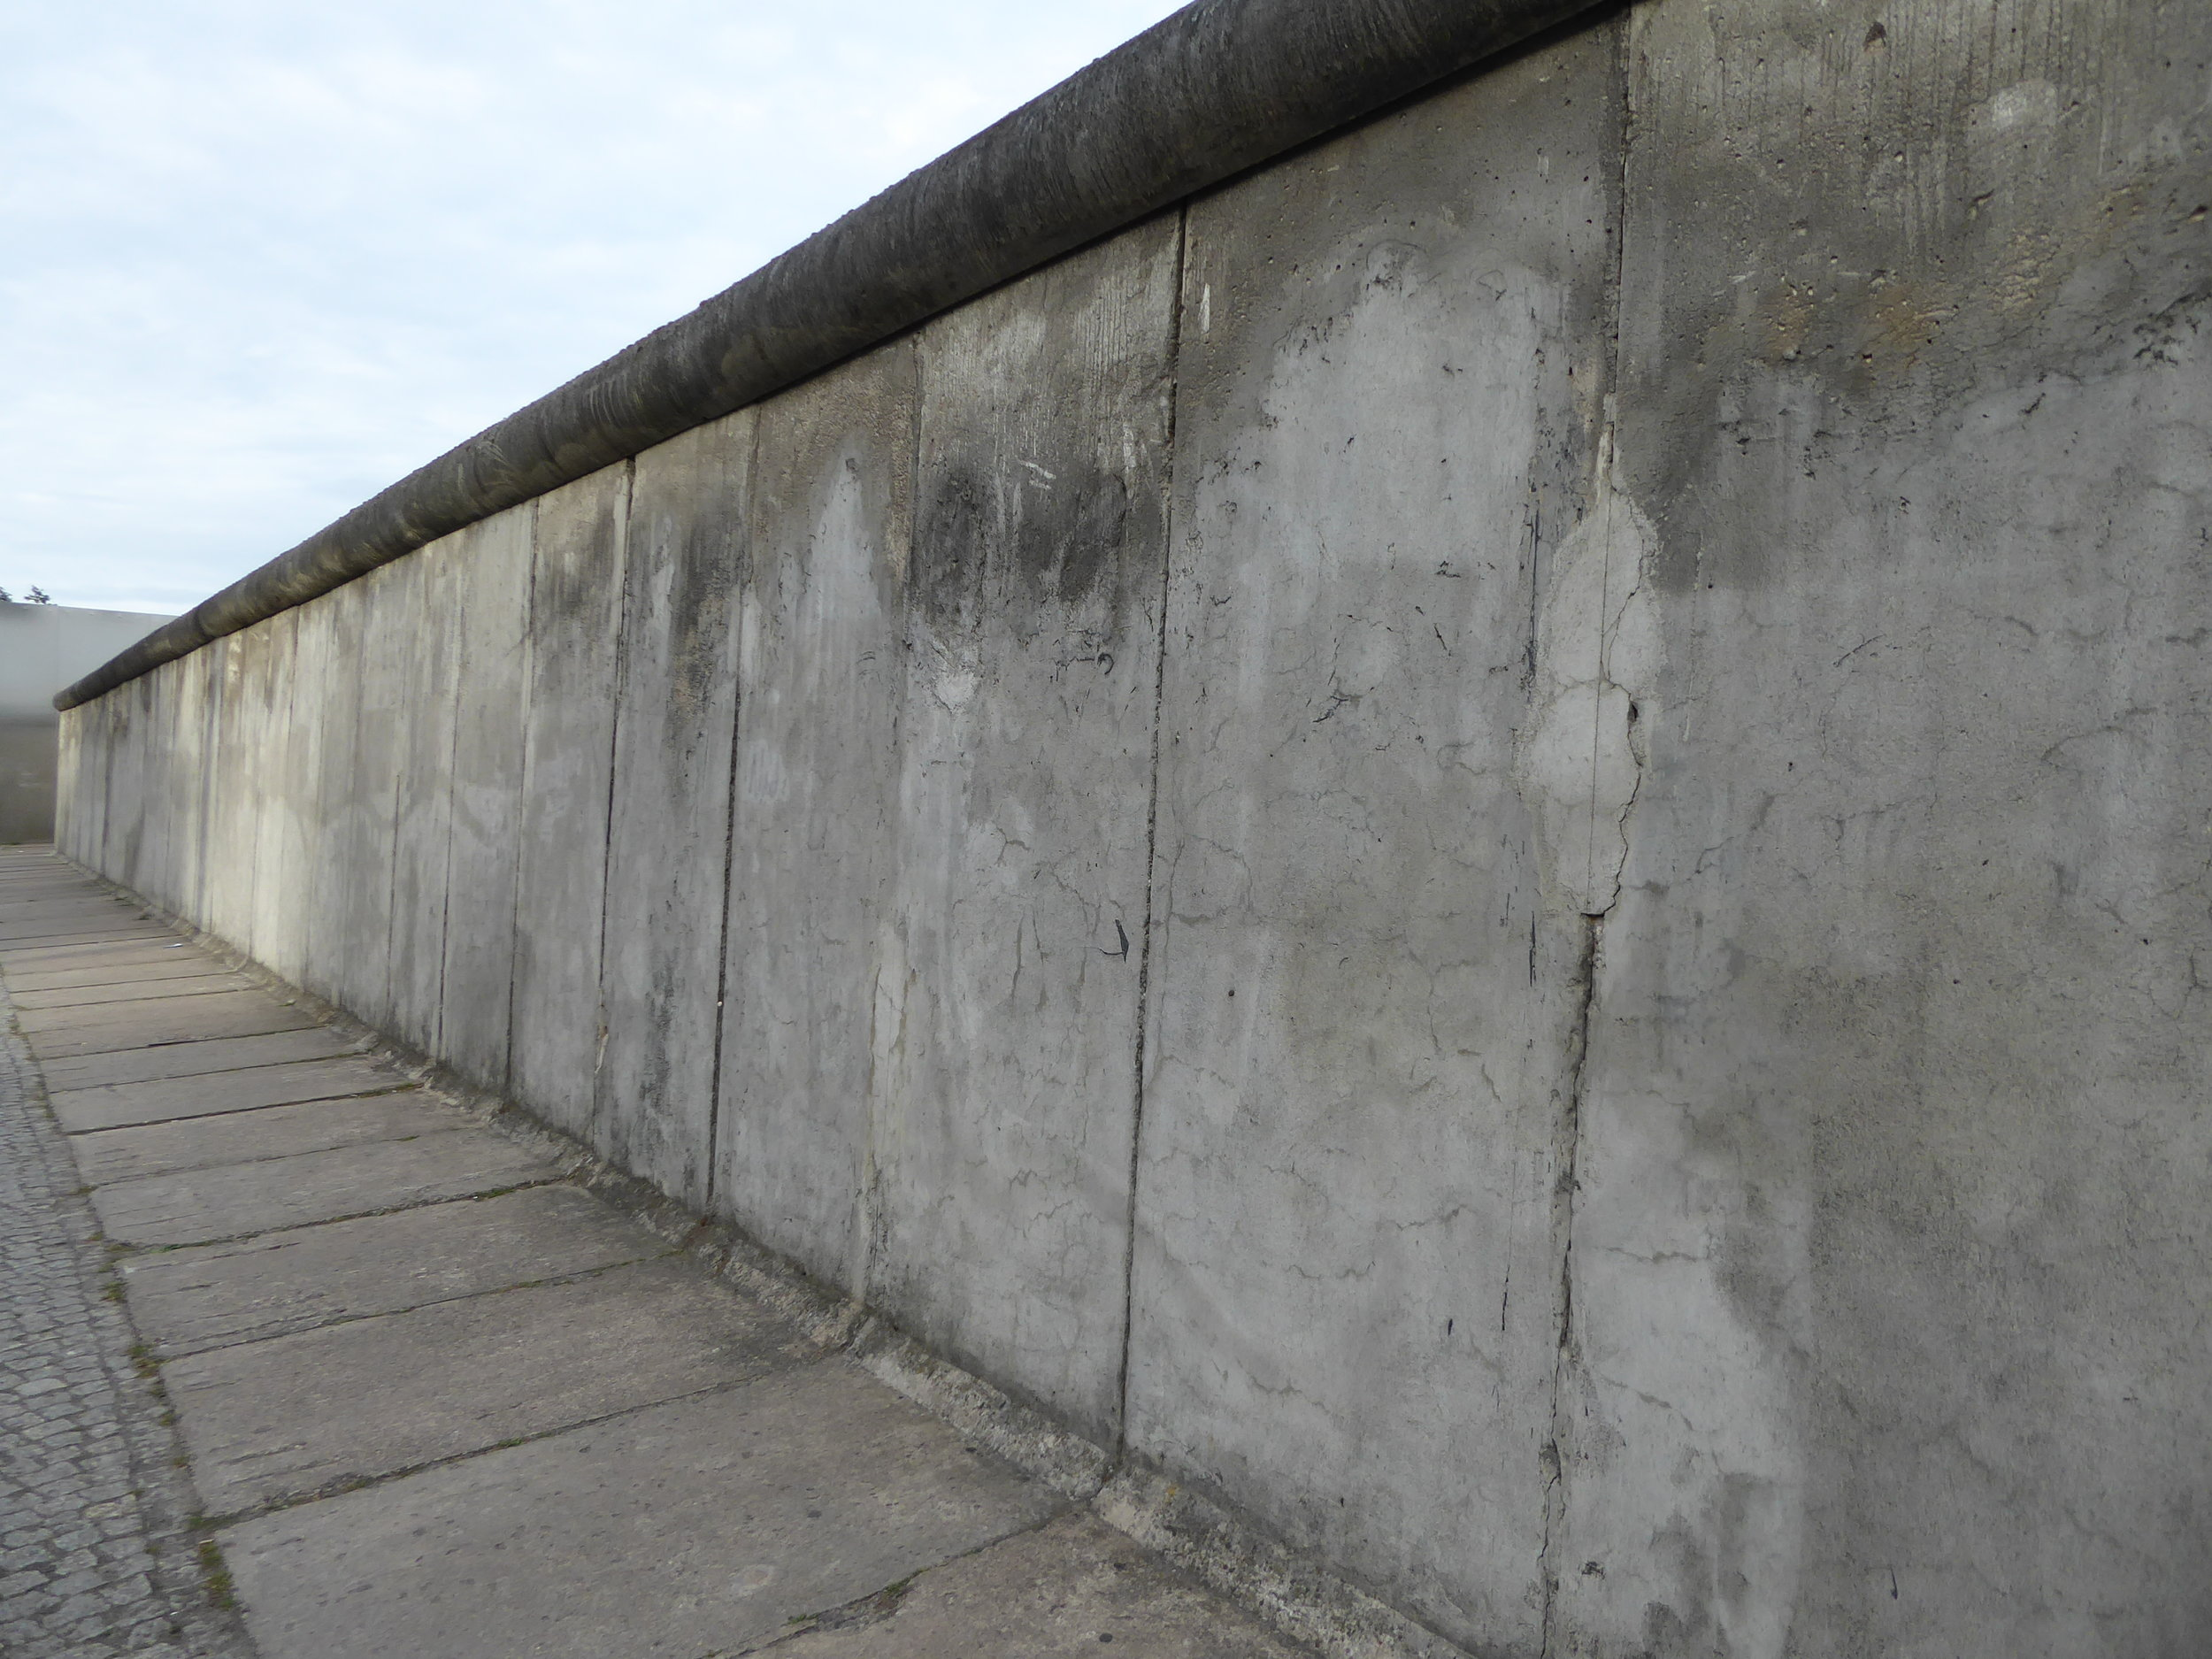 A section of what's left of the Berlin Wall. Hint: the wall didn't work out so well in the end.